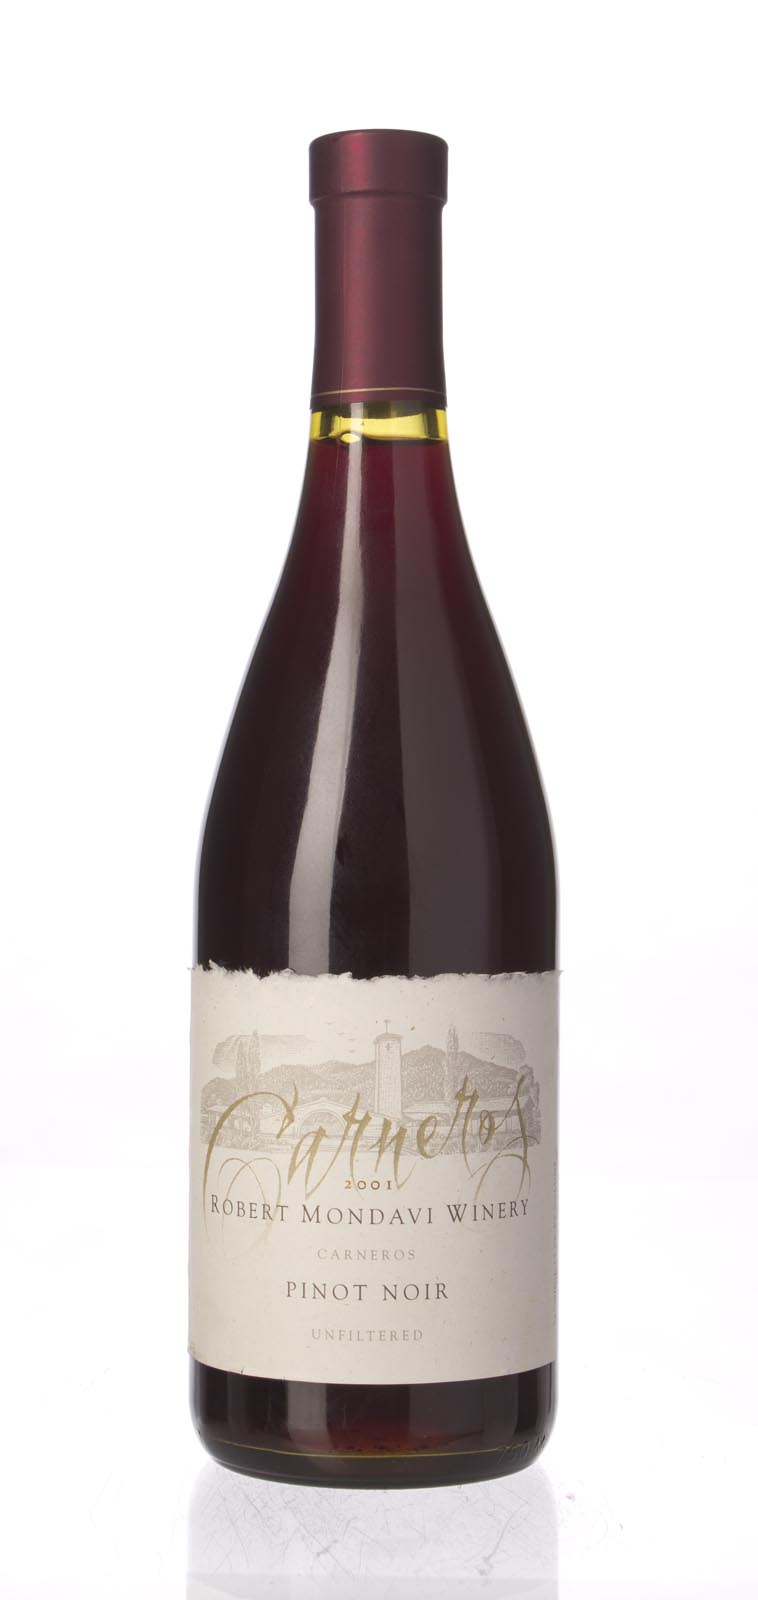 Robert Mondavi Pinot Noir Carneros 2001, 750mL () from The BPW - Merchants of rare and fine wines.